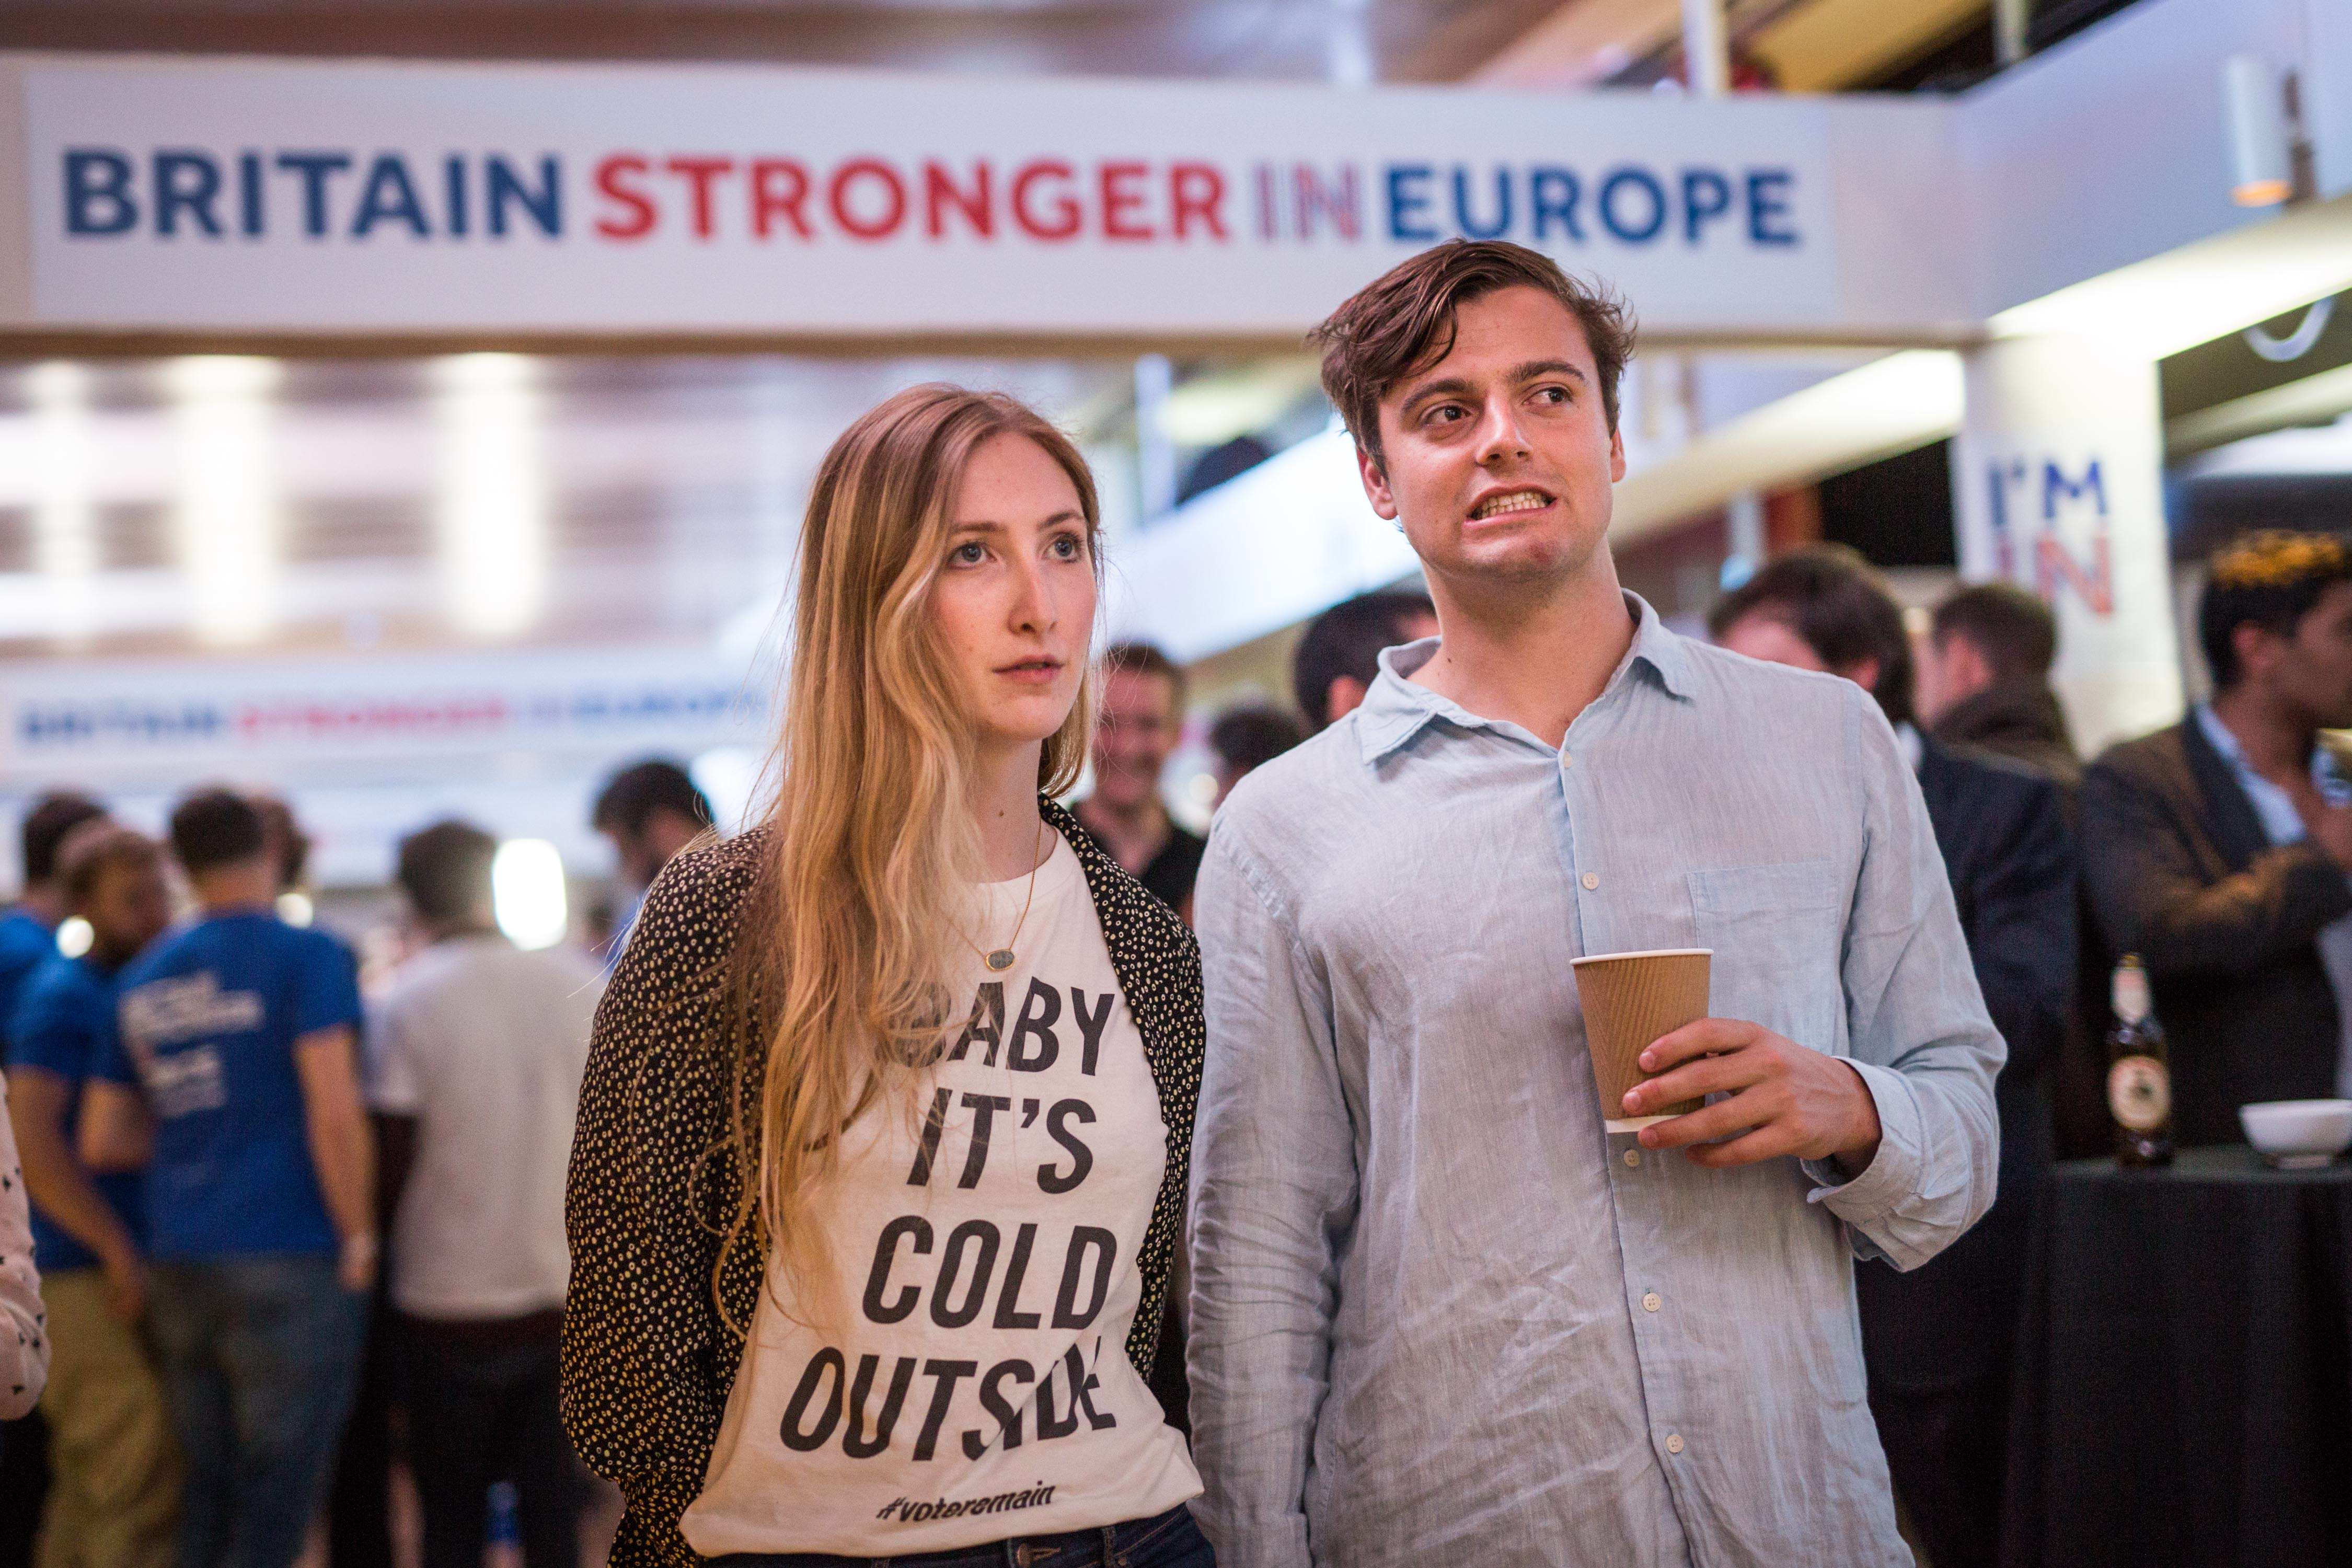 Three Charts Show How Older Voters Screwed Over Young People With Brexit GettyImages 542662872 2